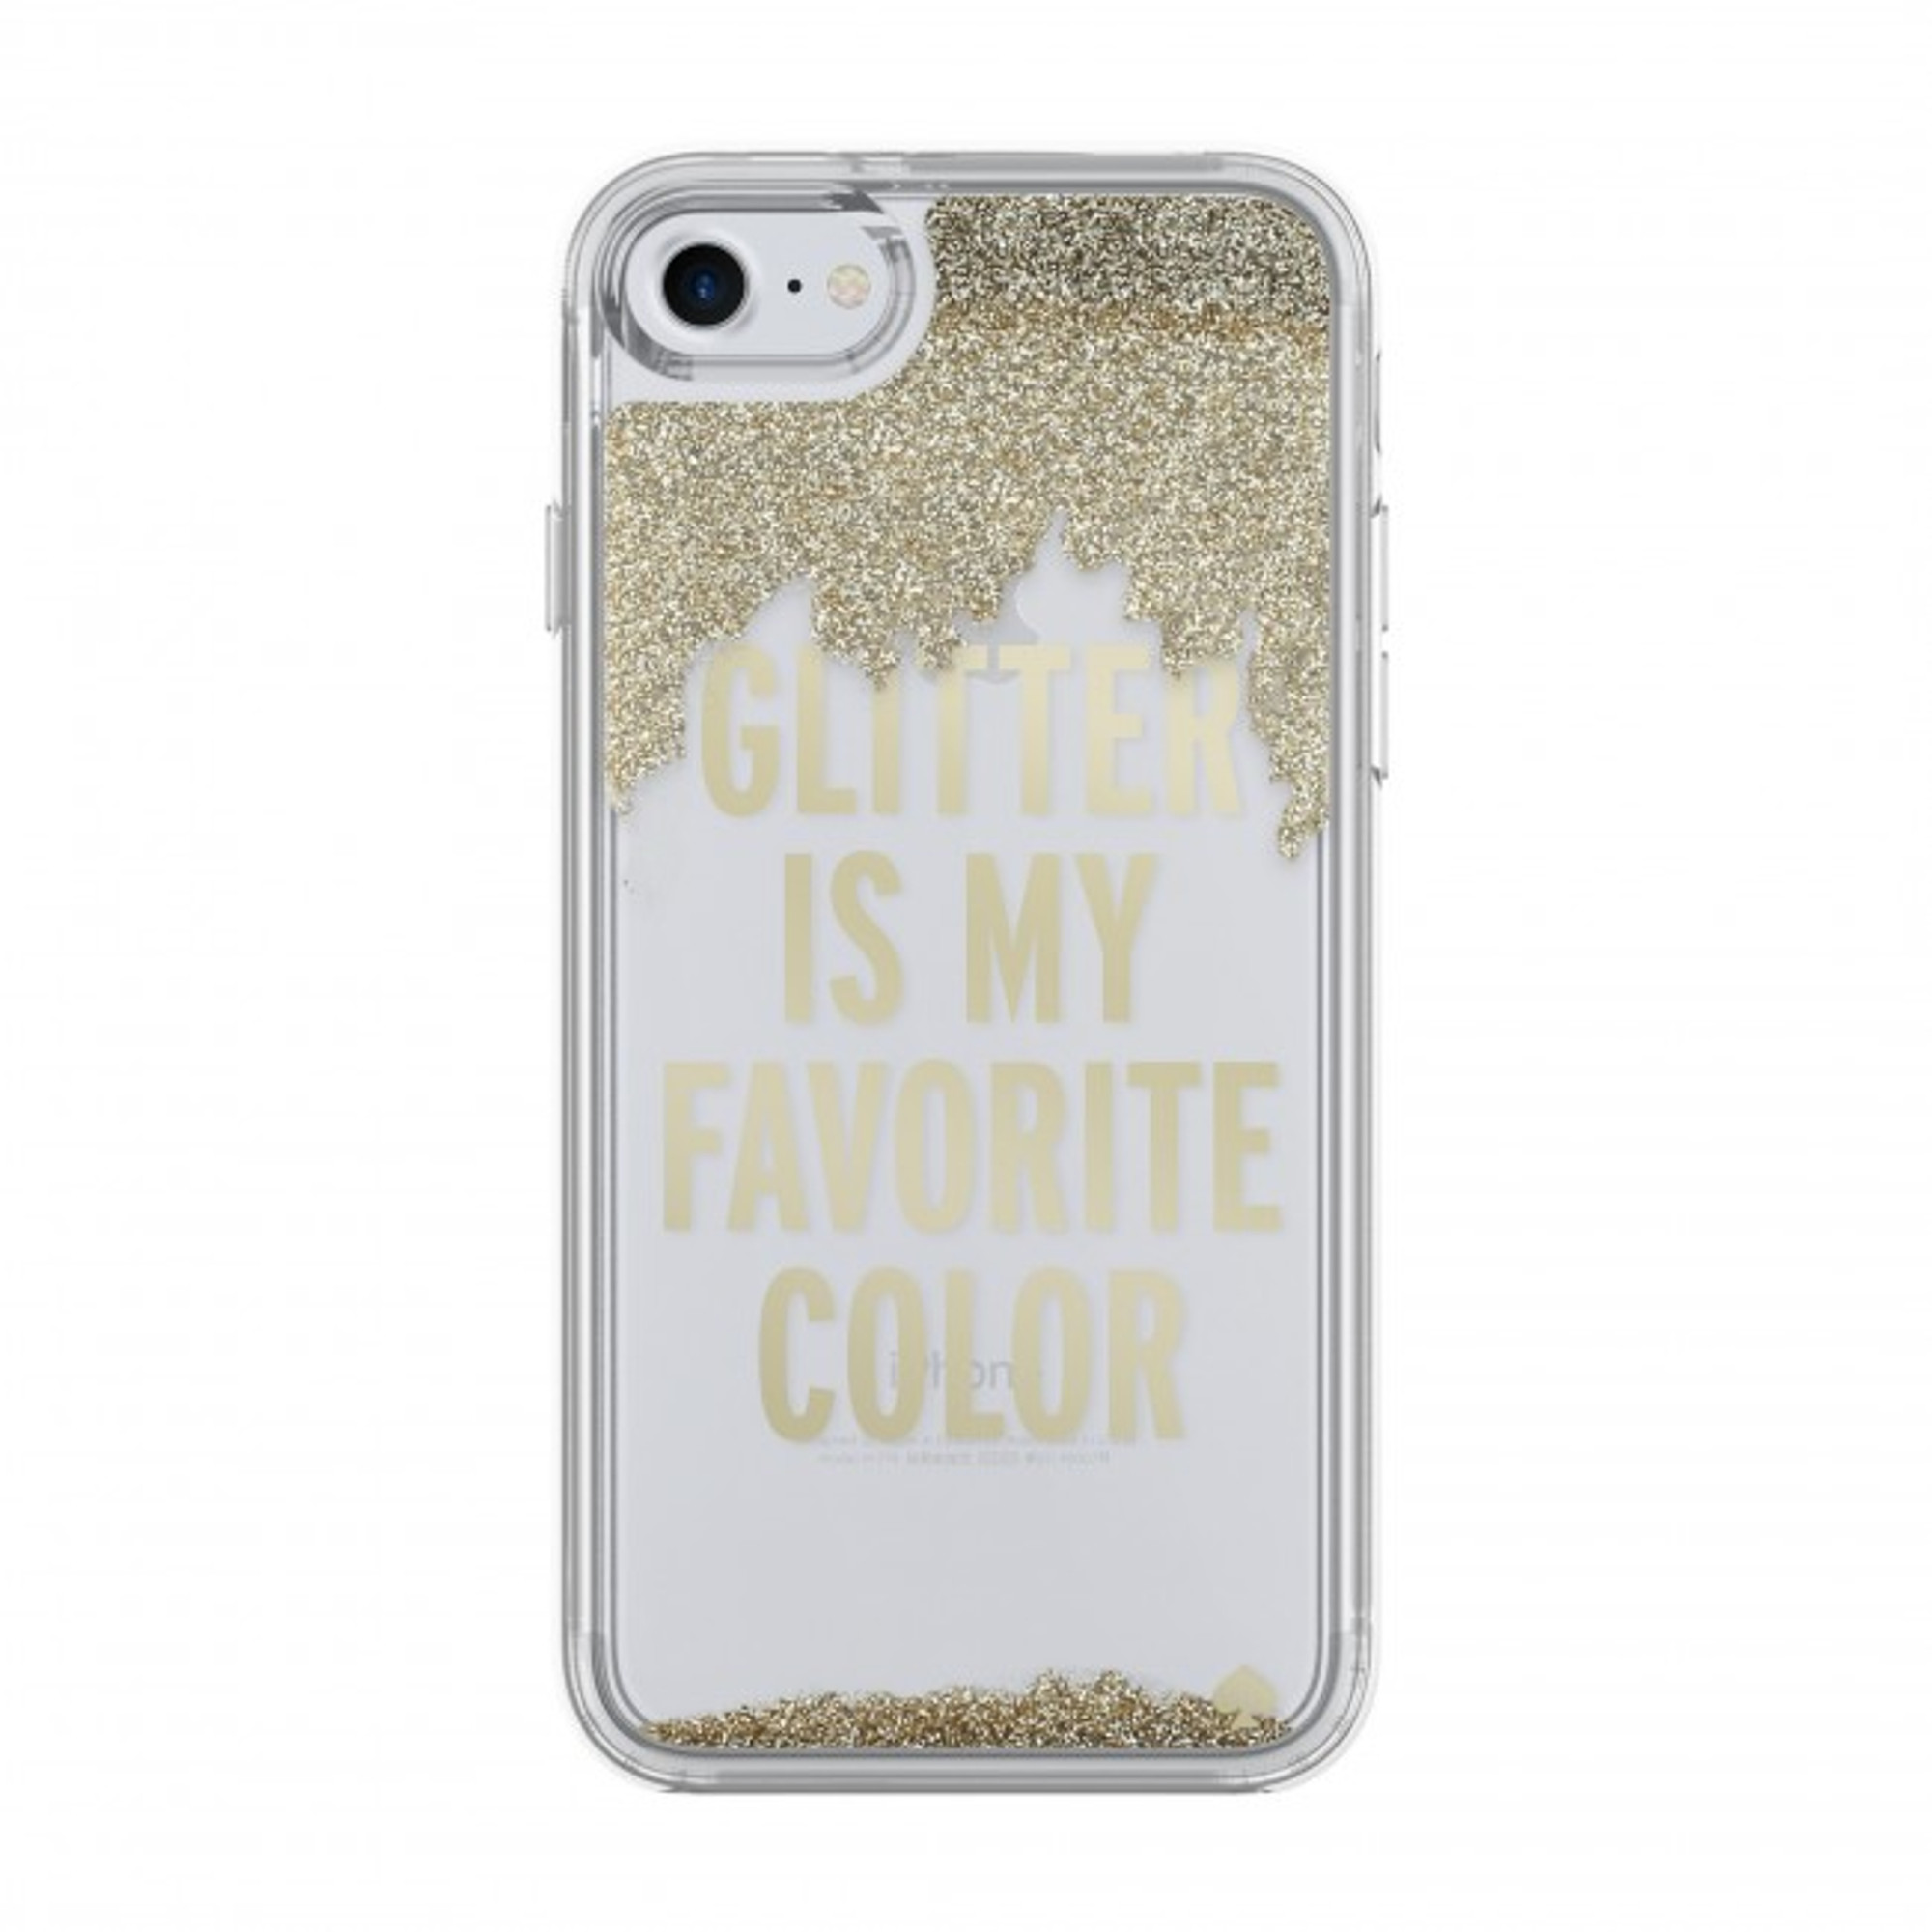 buy popular a3b1d cf907 Incipio Kate Spade New York Liquid Glitter Case for iPhone 7 - Glitter is  My Favorite Color - Gold / Clear